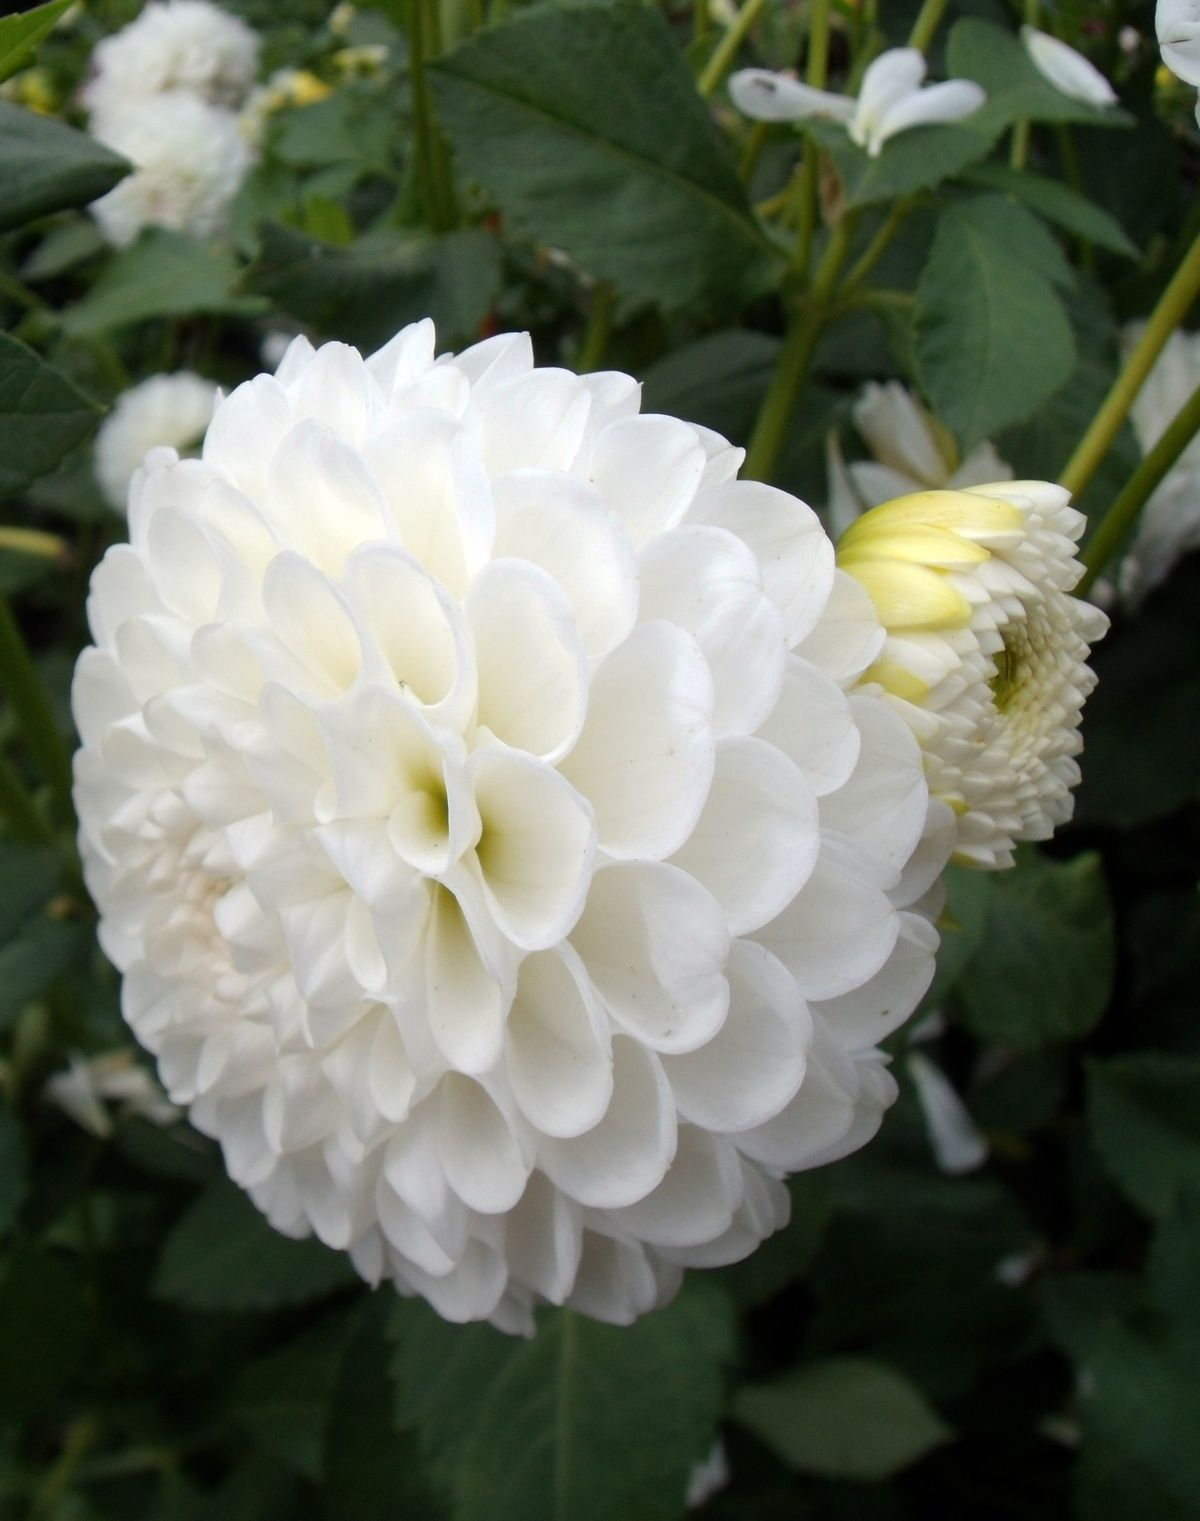 White flower bushes pics yahoo search results gardens white flower bushes pics yahoo search results dhlflorist Image collections